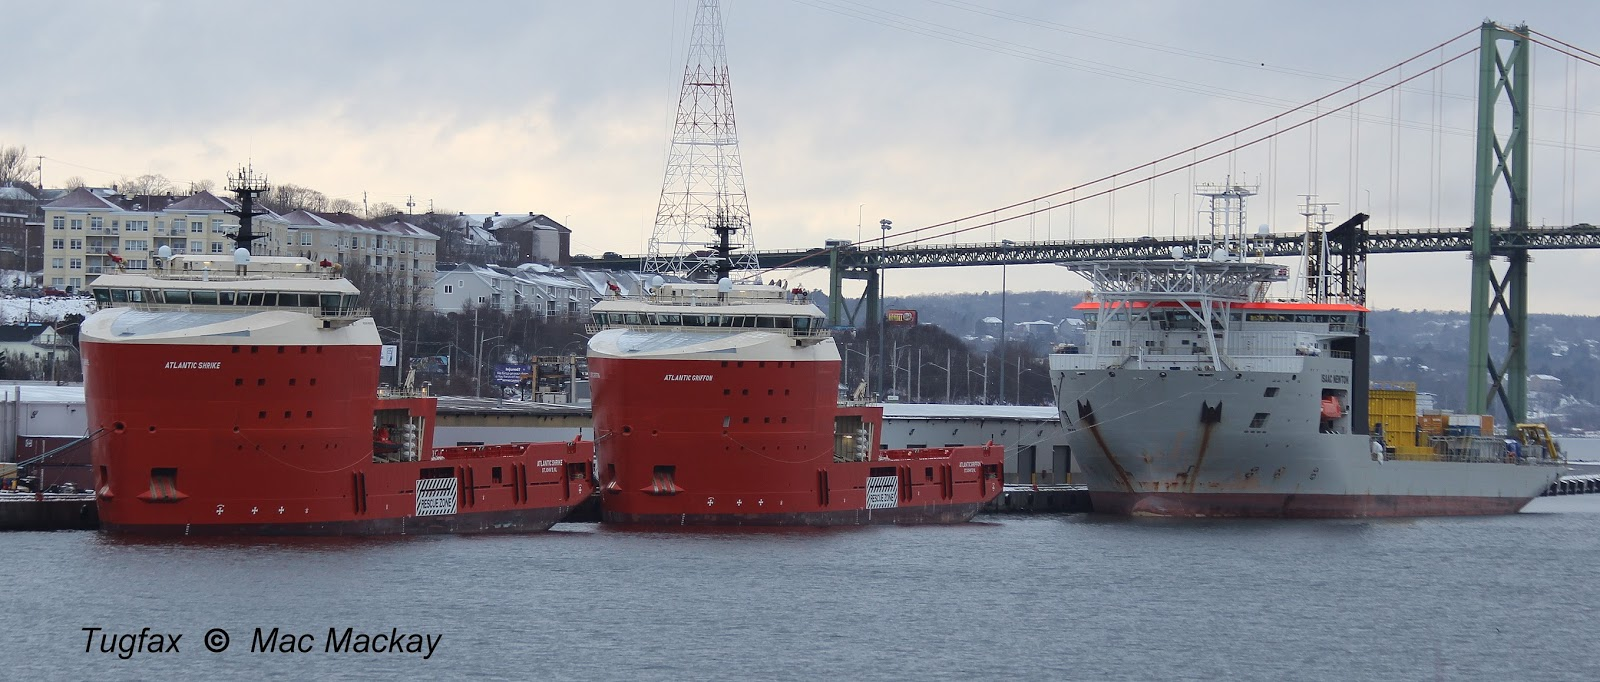 Tugfax Feast Or Famine In The Offshore And More On